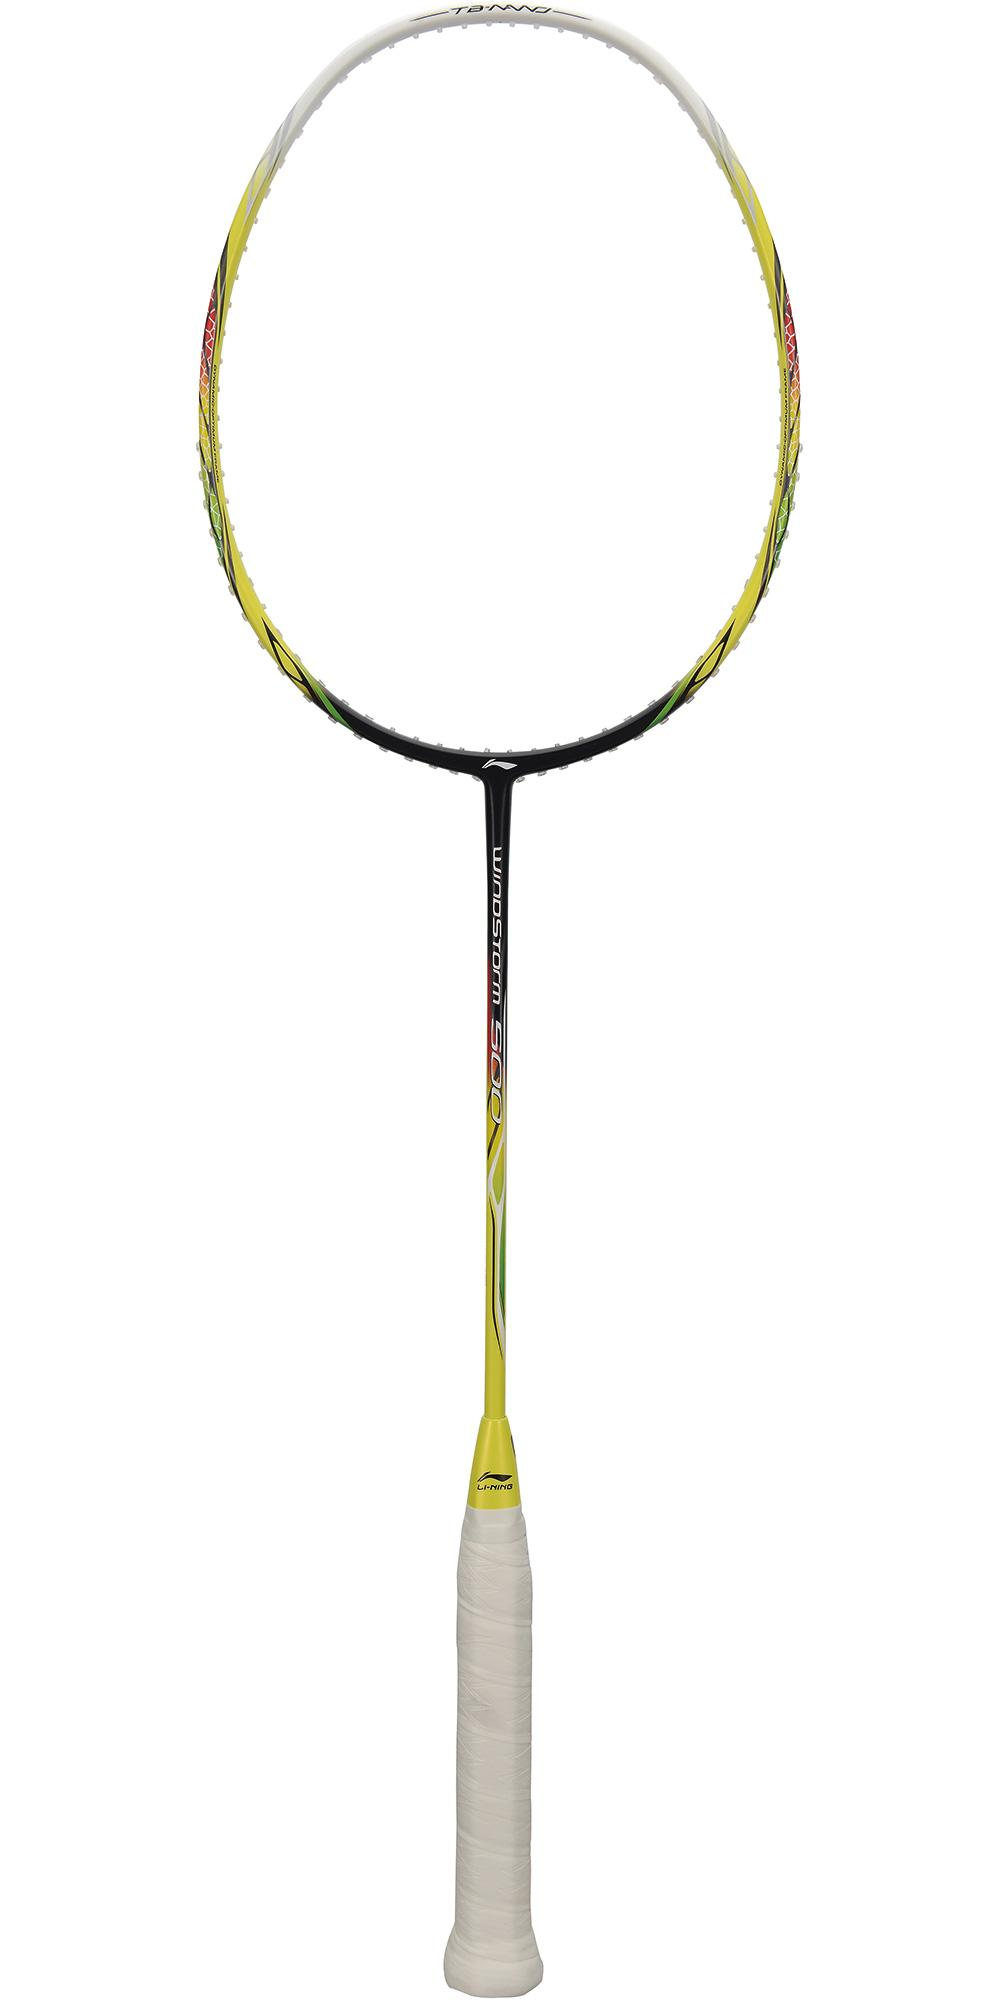 e030b20d9 Li-Ning Windstorm 500 Badminton Racket - Yellow - Tennisnuts.com